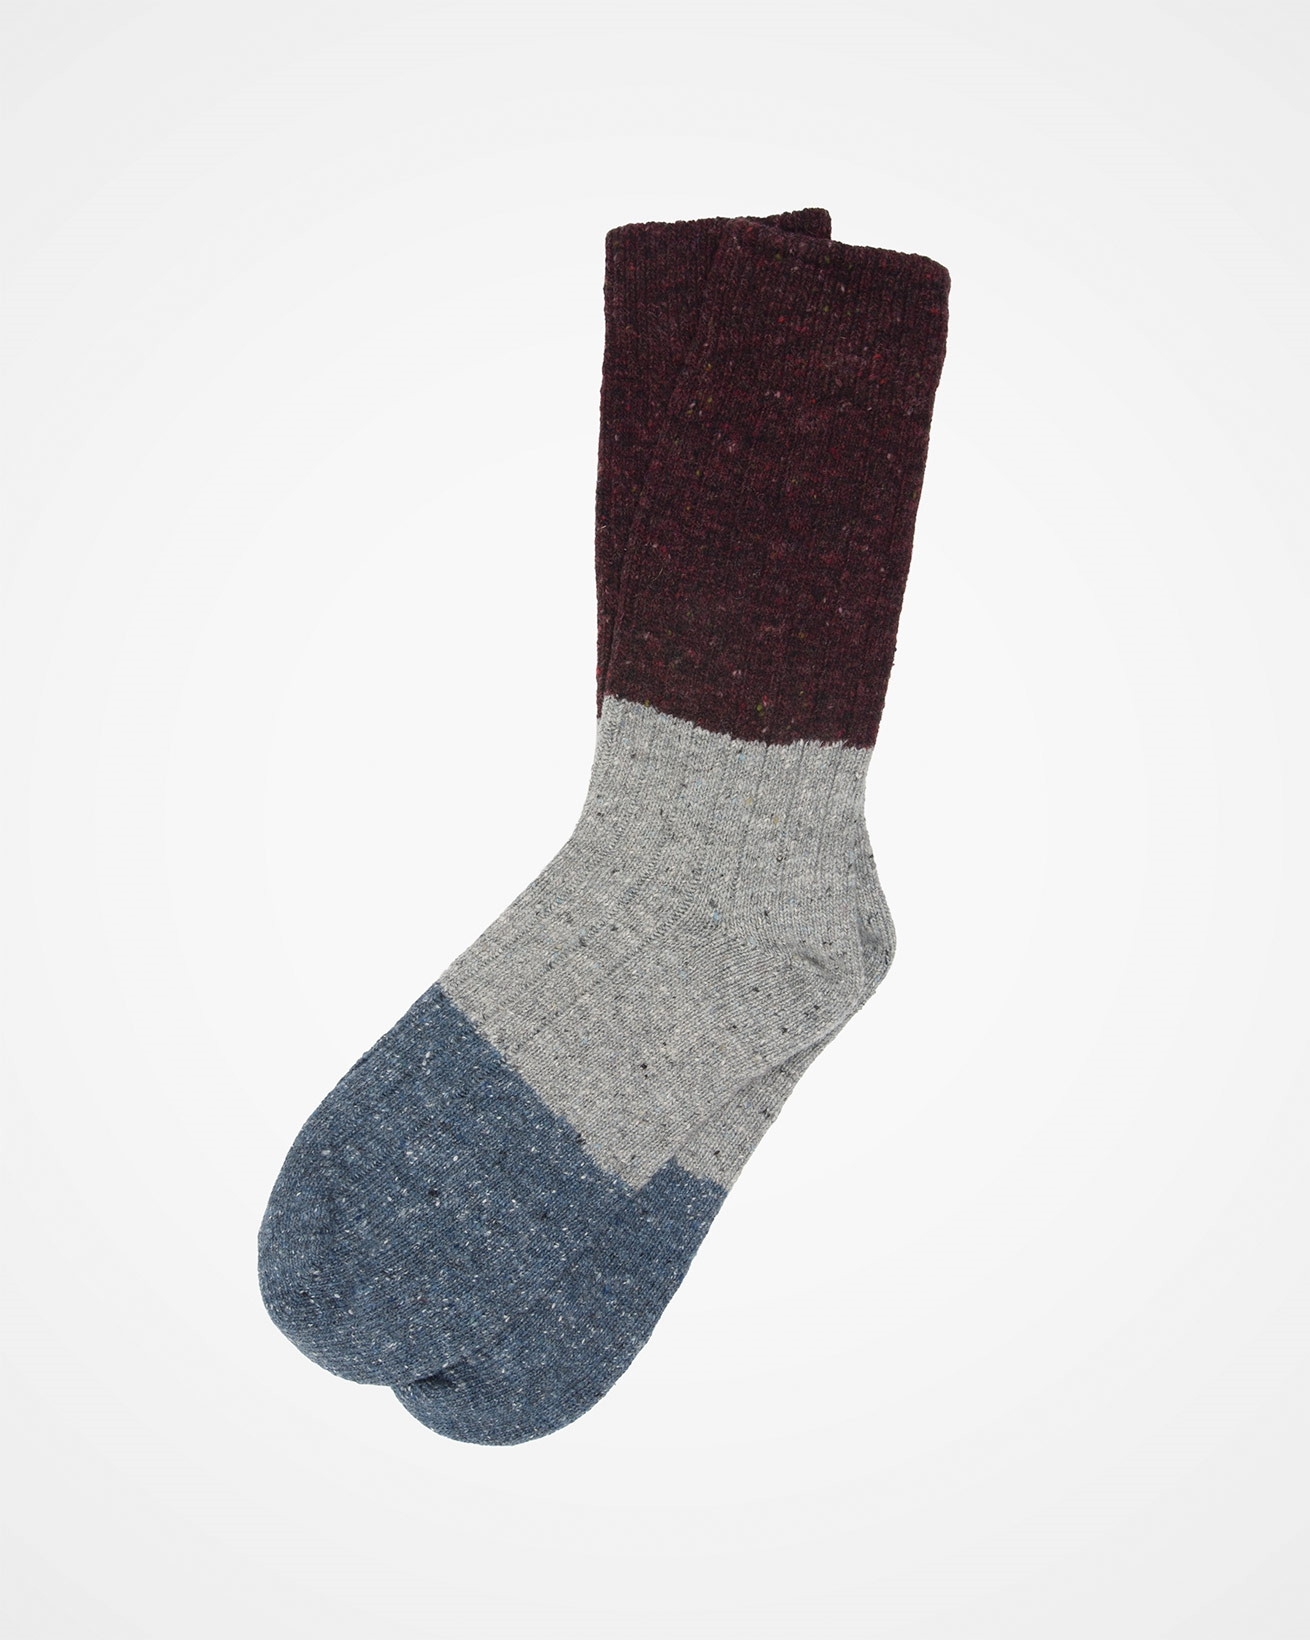 7775_mens-donegal-colourblock-socks_claret_flat.jpg